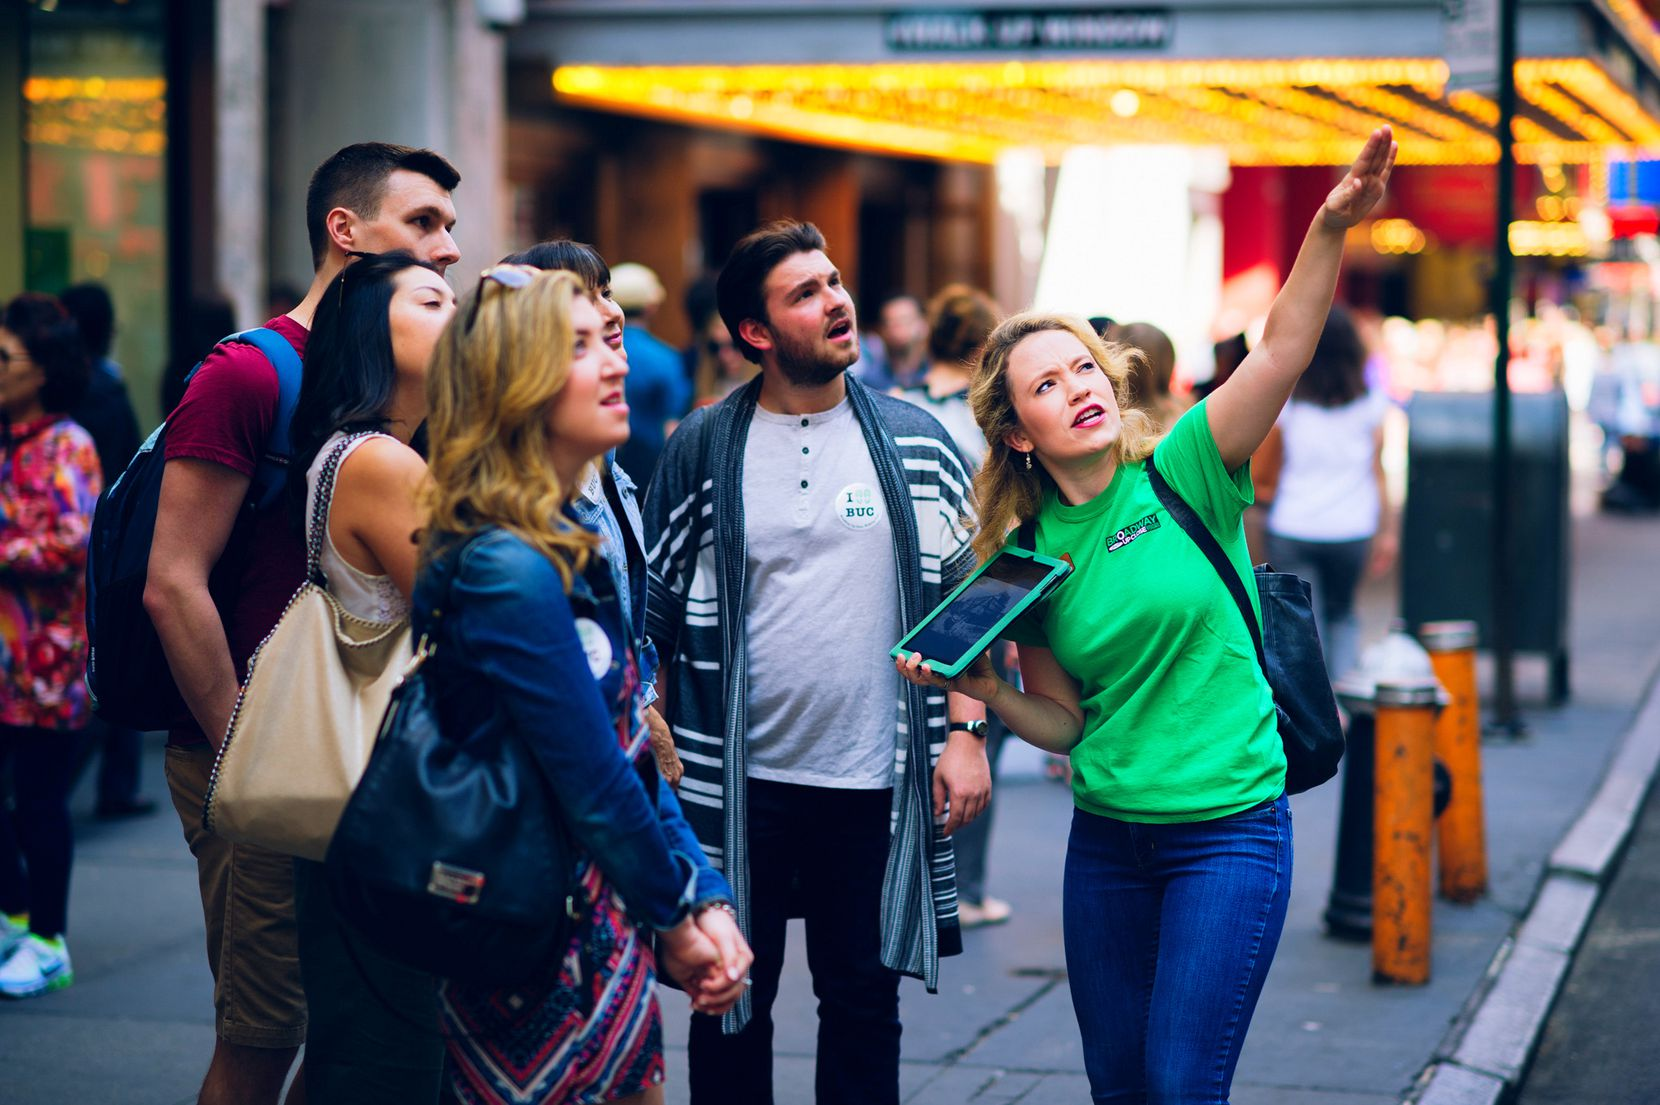 The green-clad guides for the Broadway Up Close tour company carry an iPad filled with period photos and video clips to bring theater history to life.